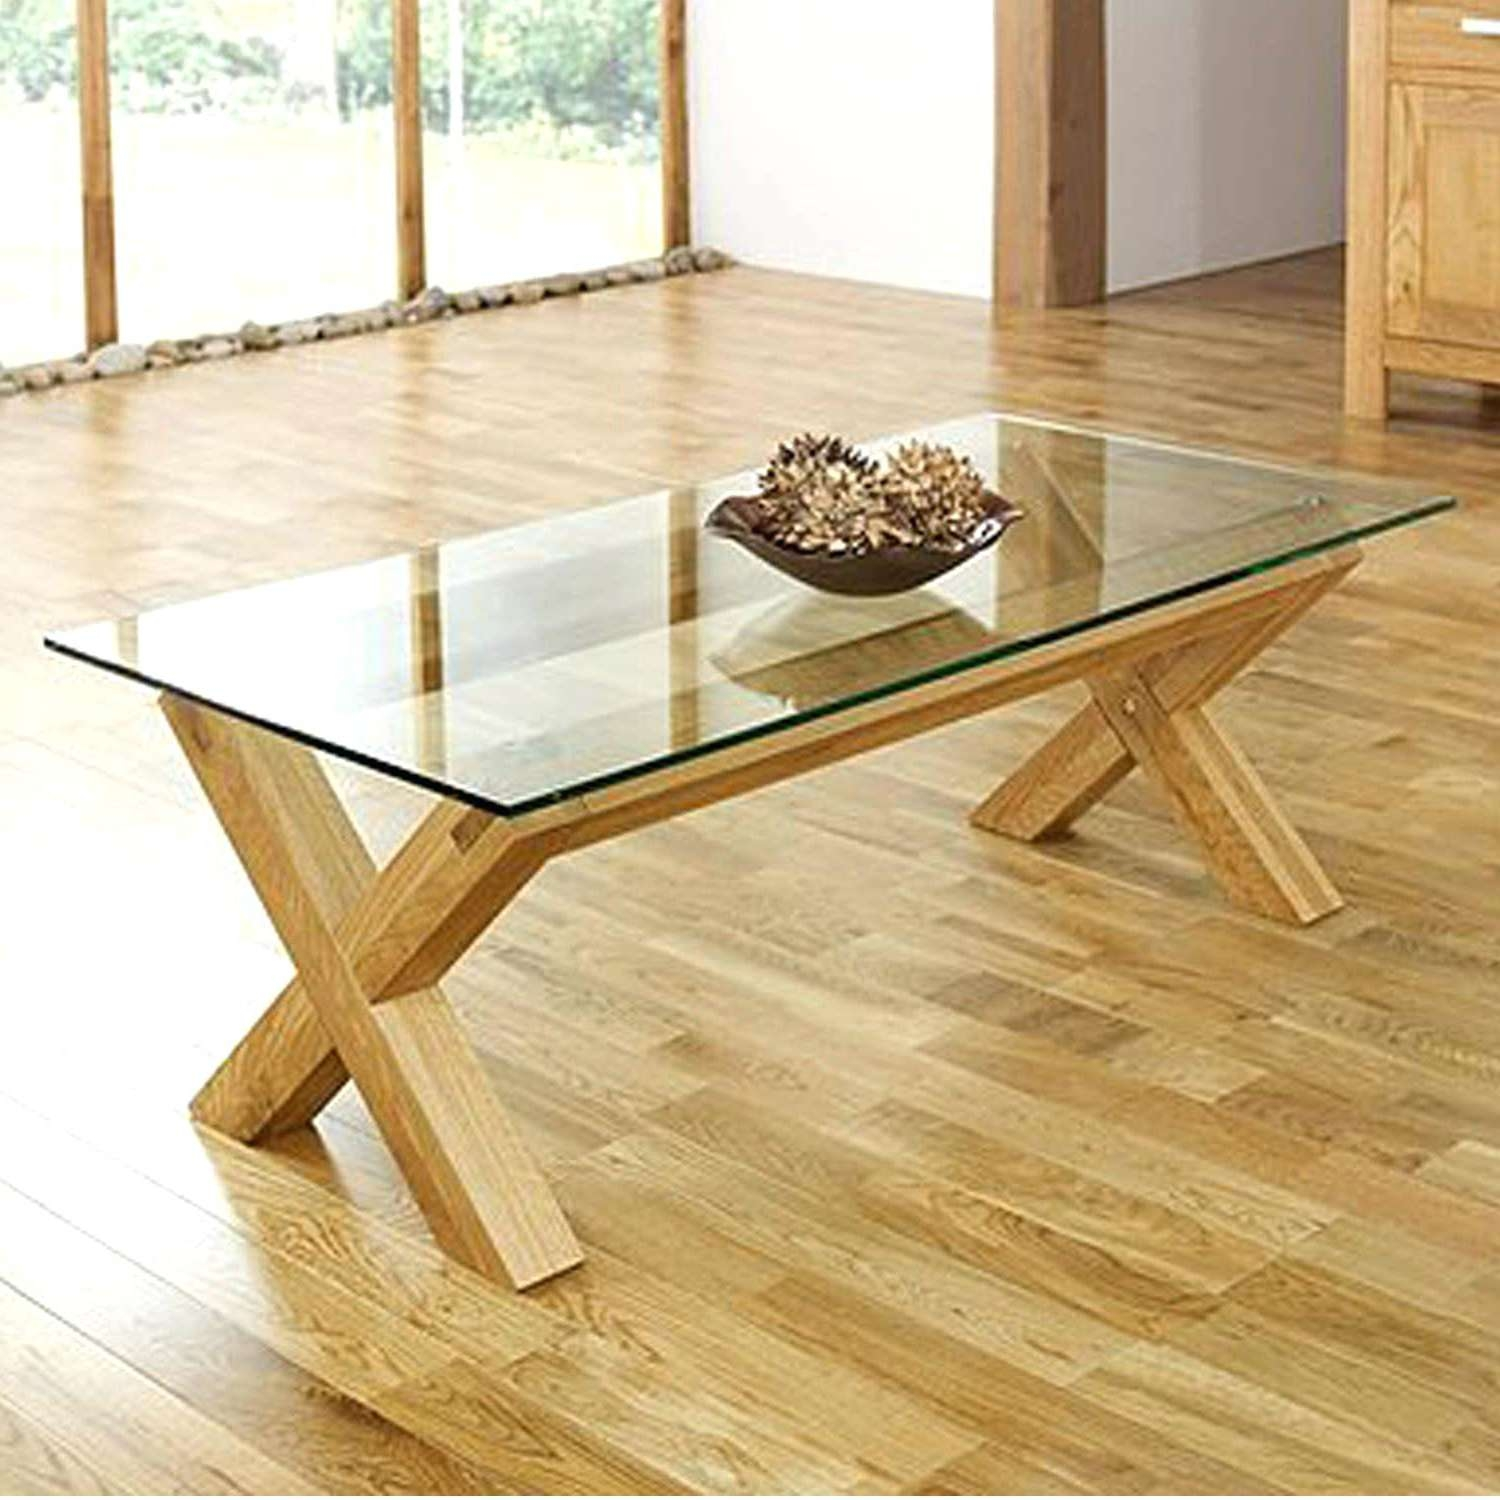 Popular Oak And Glass Coffee Table Inside Oak And Glass Coffee Table R R Small Oak Coffee Table Sale (View 15 of 20)